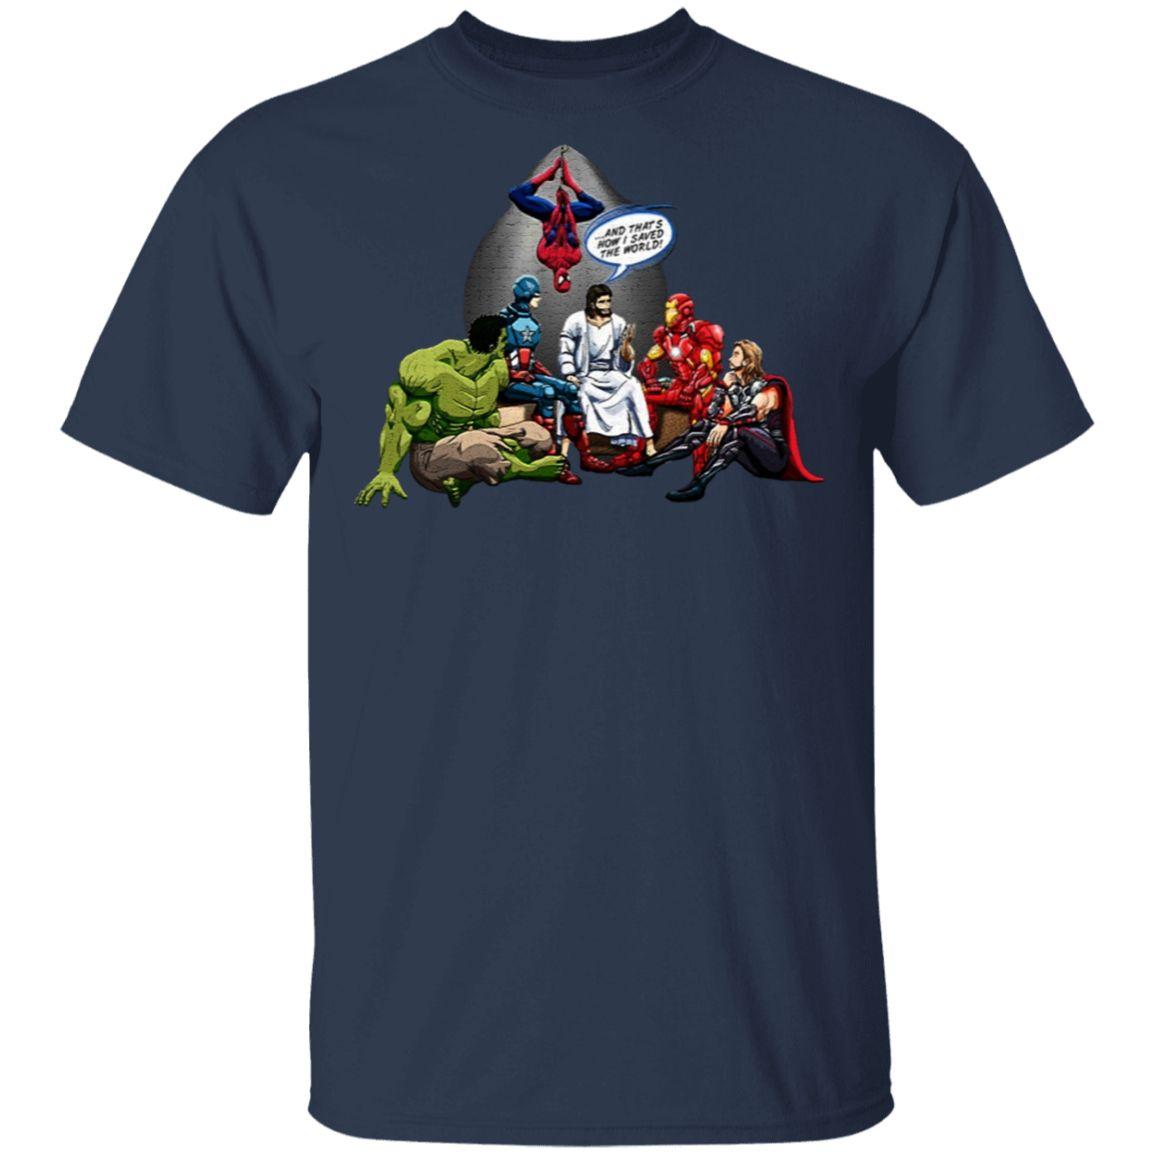 AND THAT HOW I SAVED THE WORLD T-Shirt